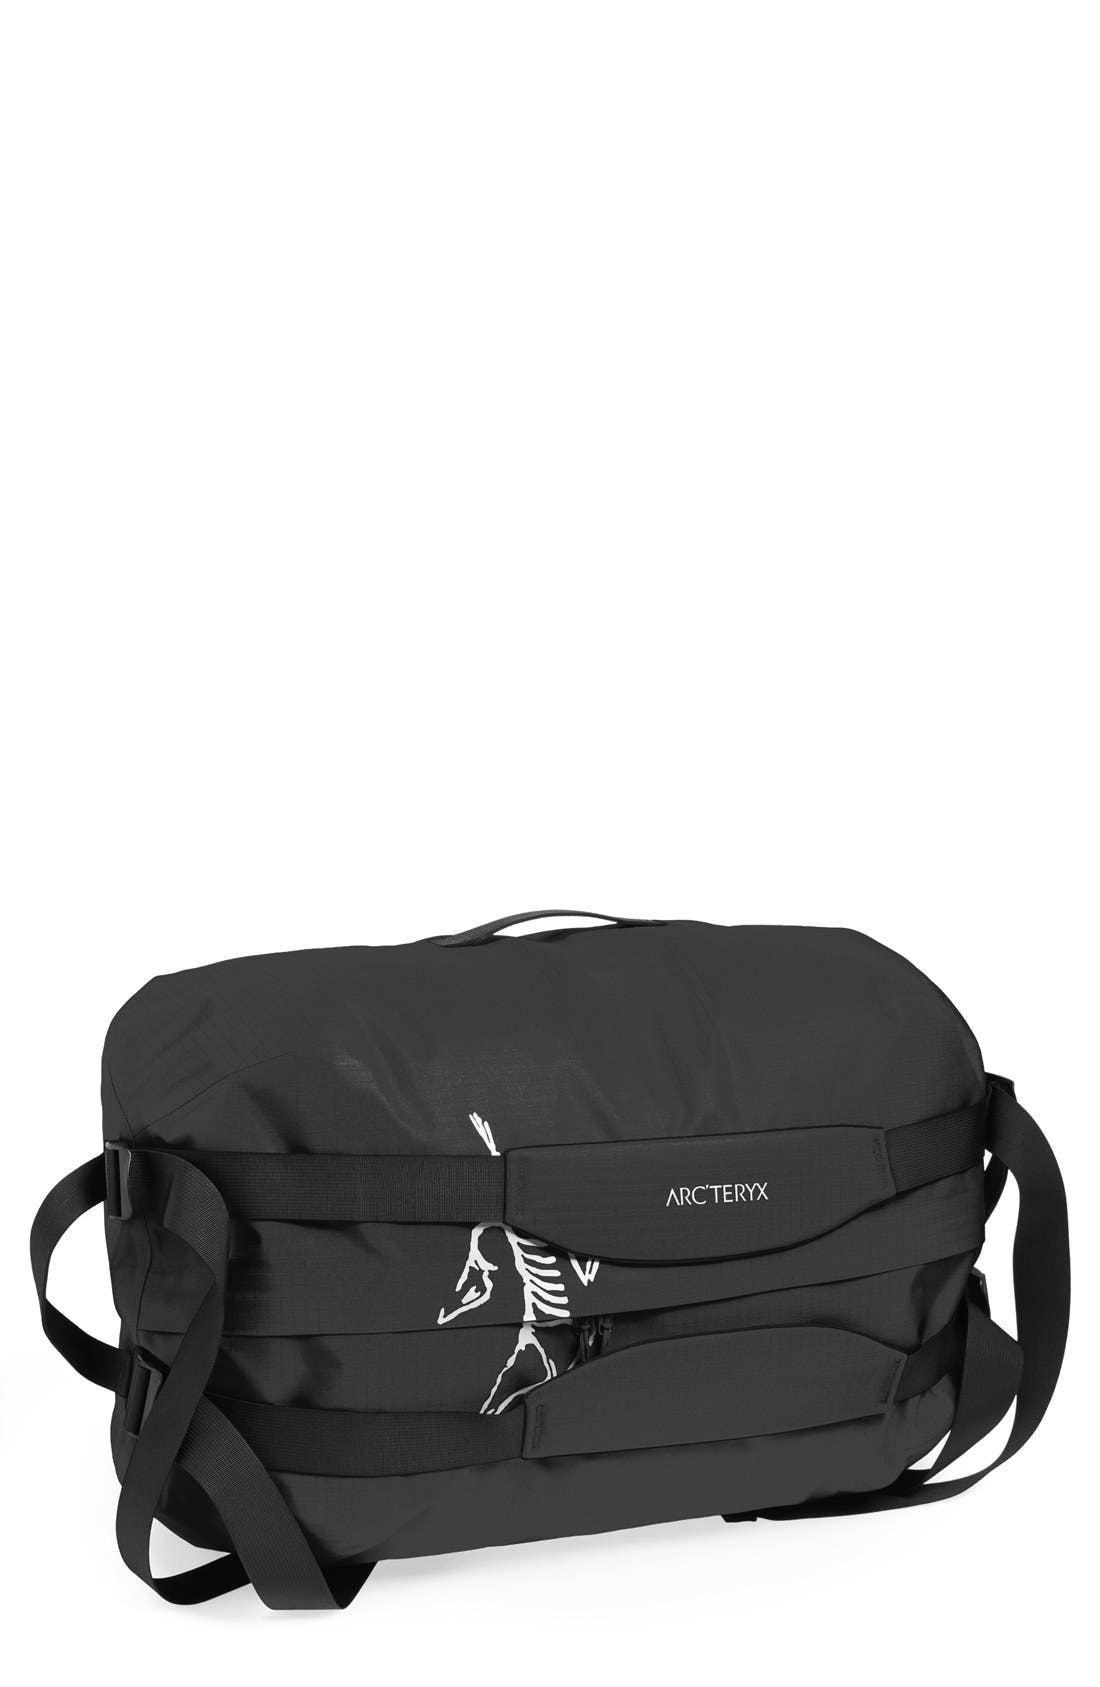 Main Image - Arc'teryx 'Carrier' Weather Resistant Convertible Duffel Bag/Backpack (50 liter)